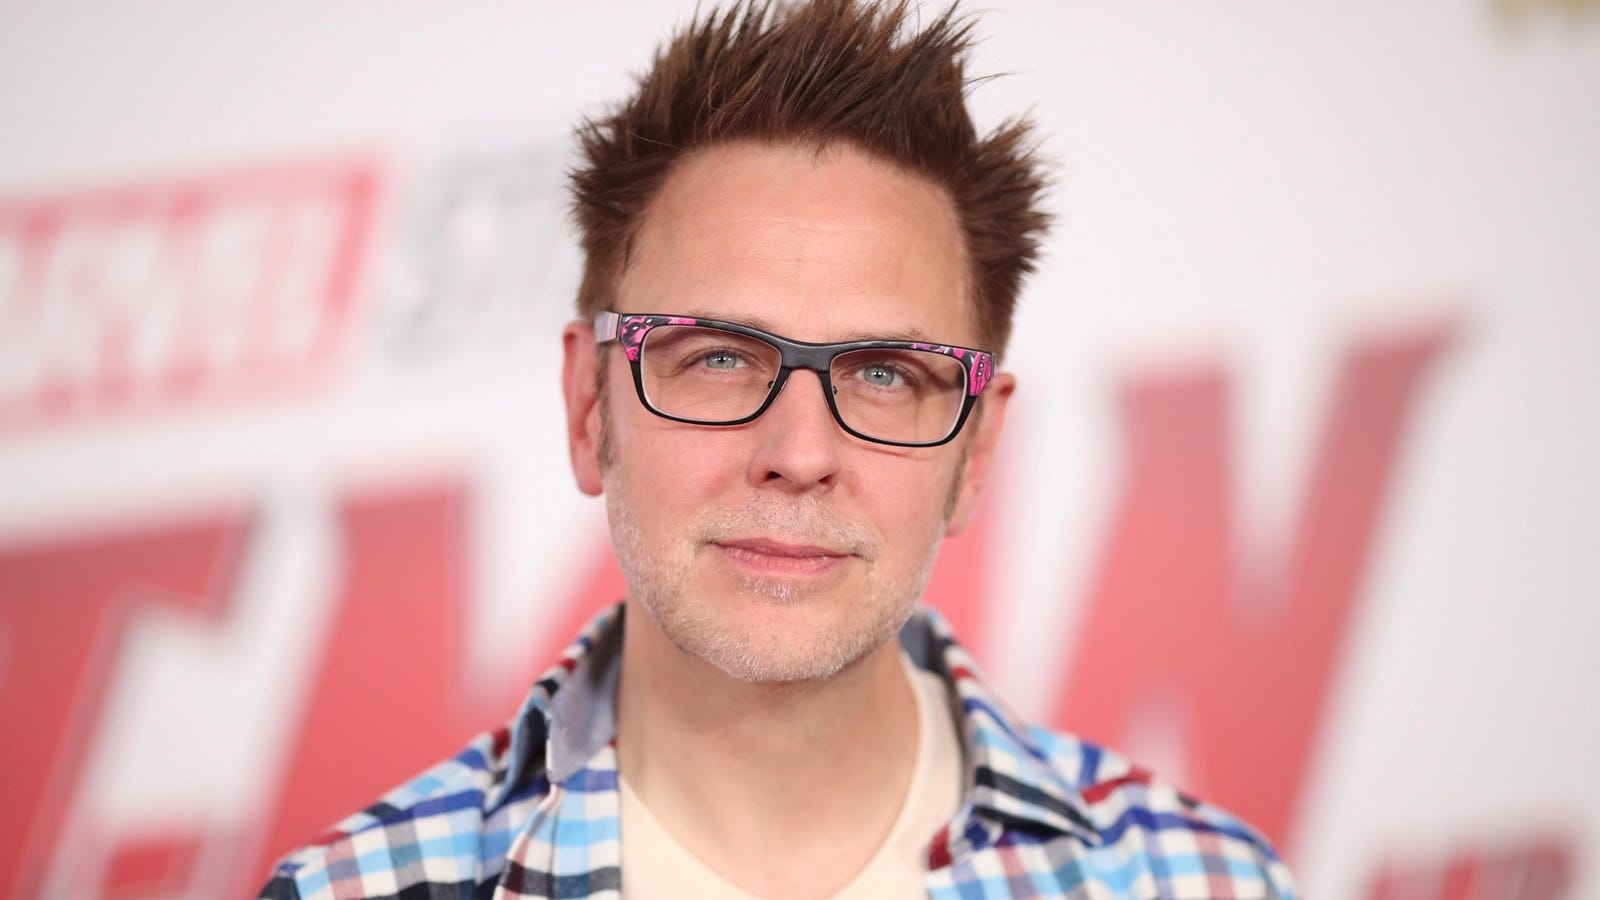 James Gunn Is Moving to DC and Will Write the Next Suicide Squad Film